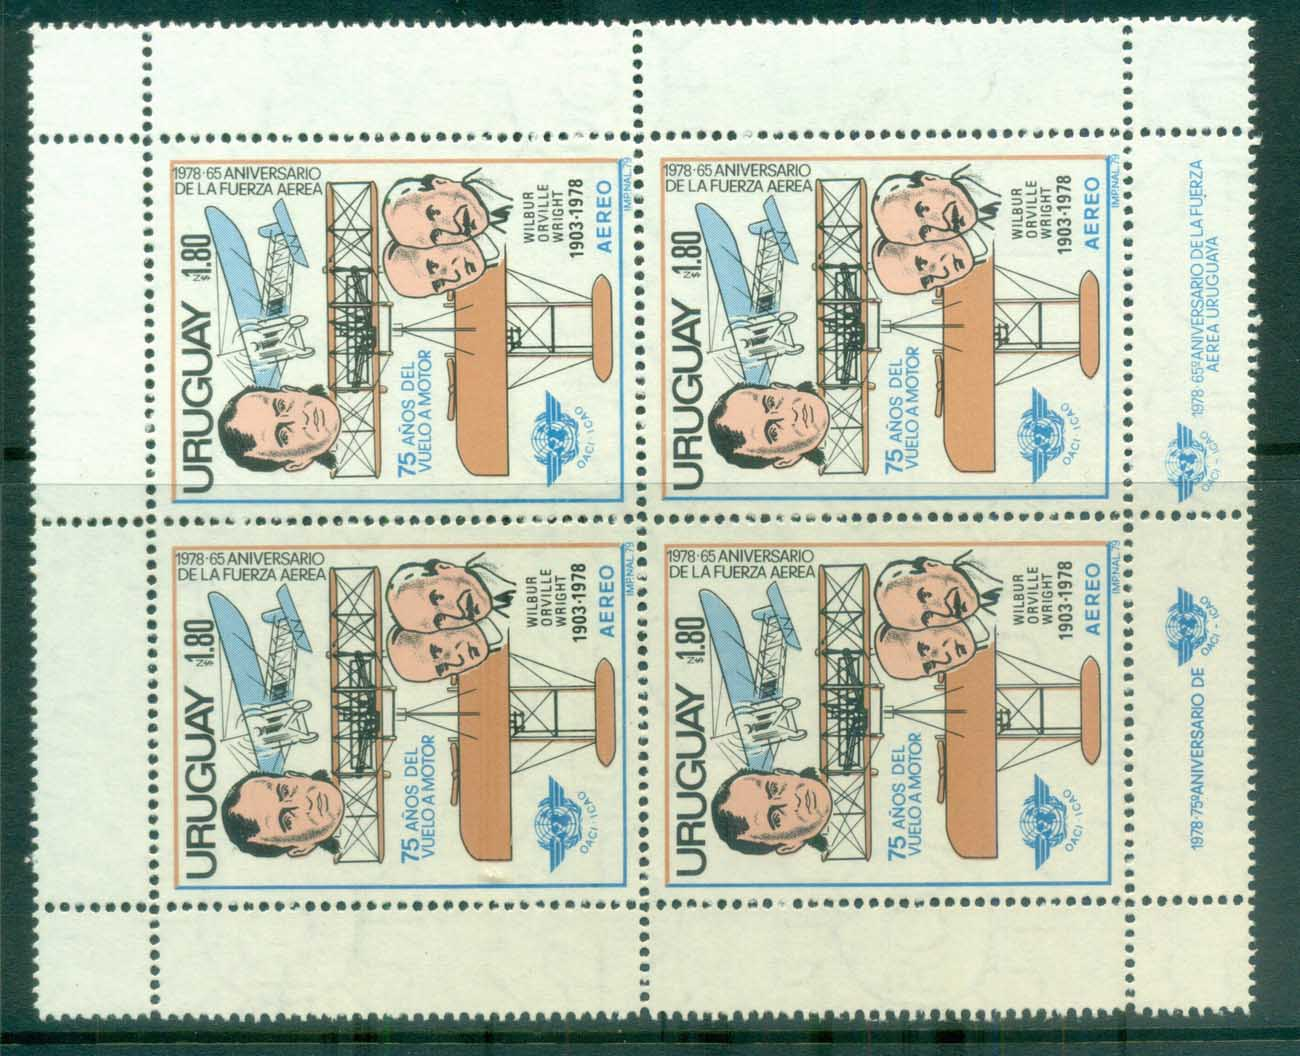 Uruguay 1979 Wright Bros, Blk 4 with margins MUH lot81627